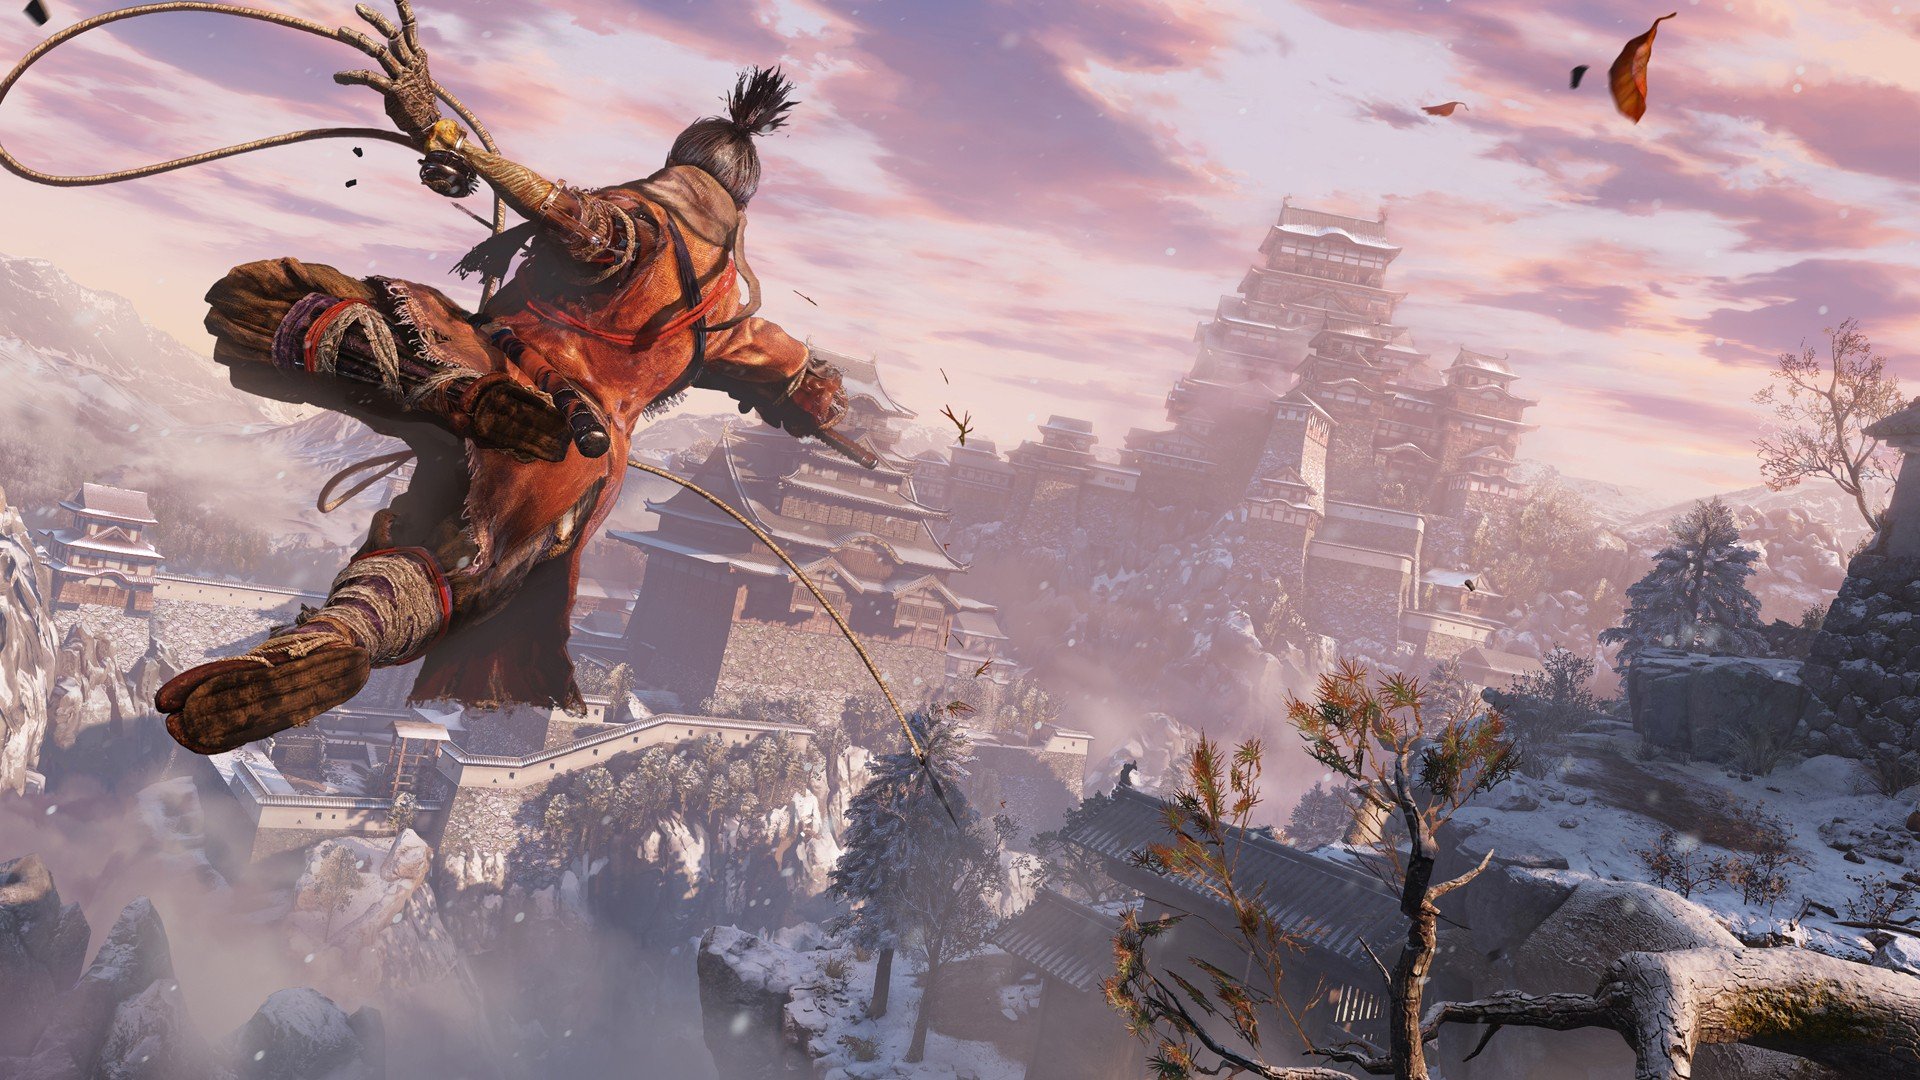 Video For E3 2018: Sekiro: Shadows Die Twice is a Ninja Nightmare from the Designer of Dark Souls